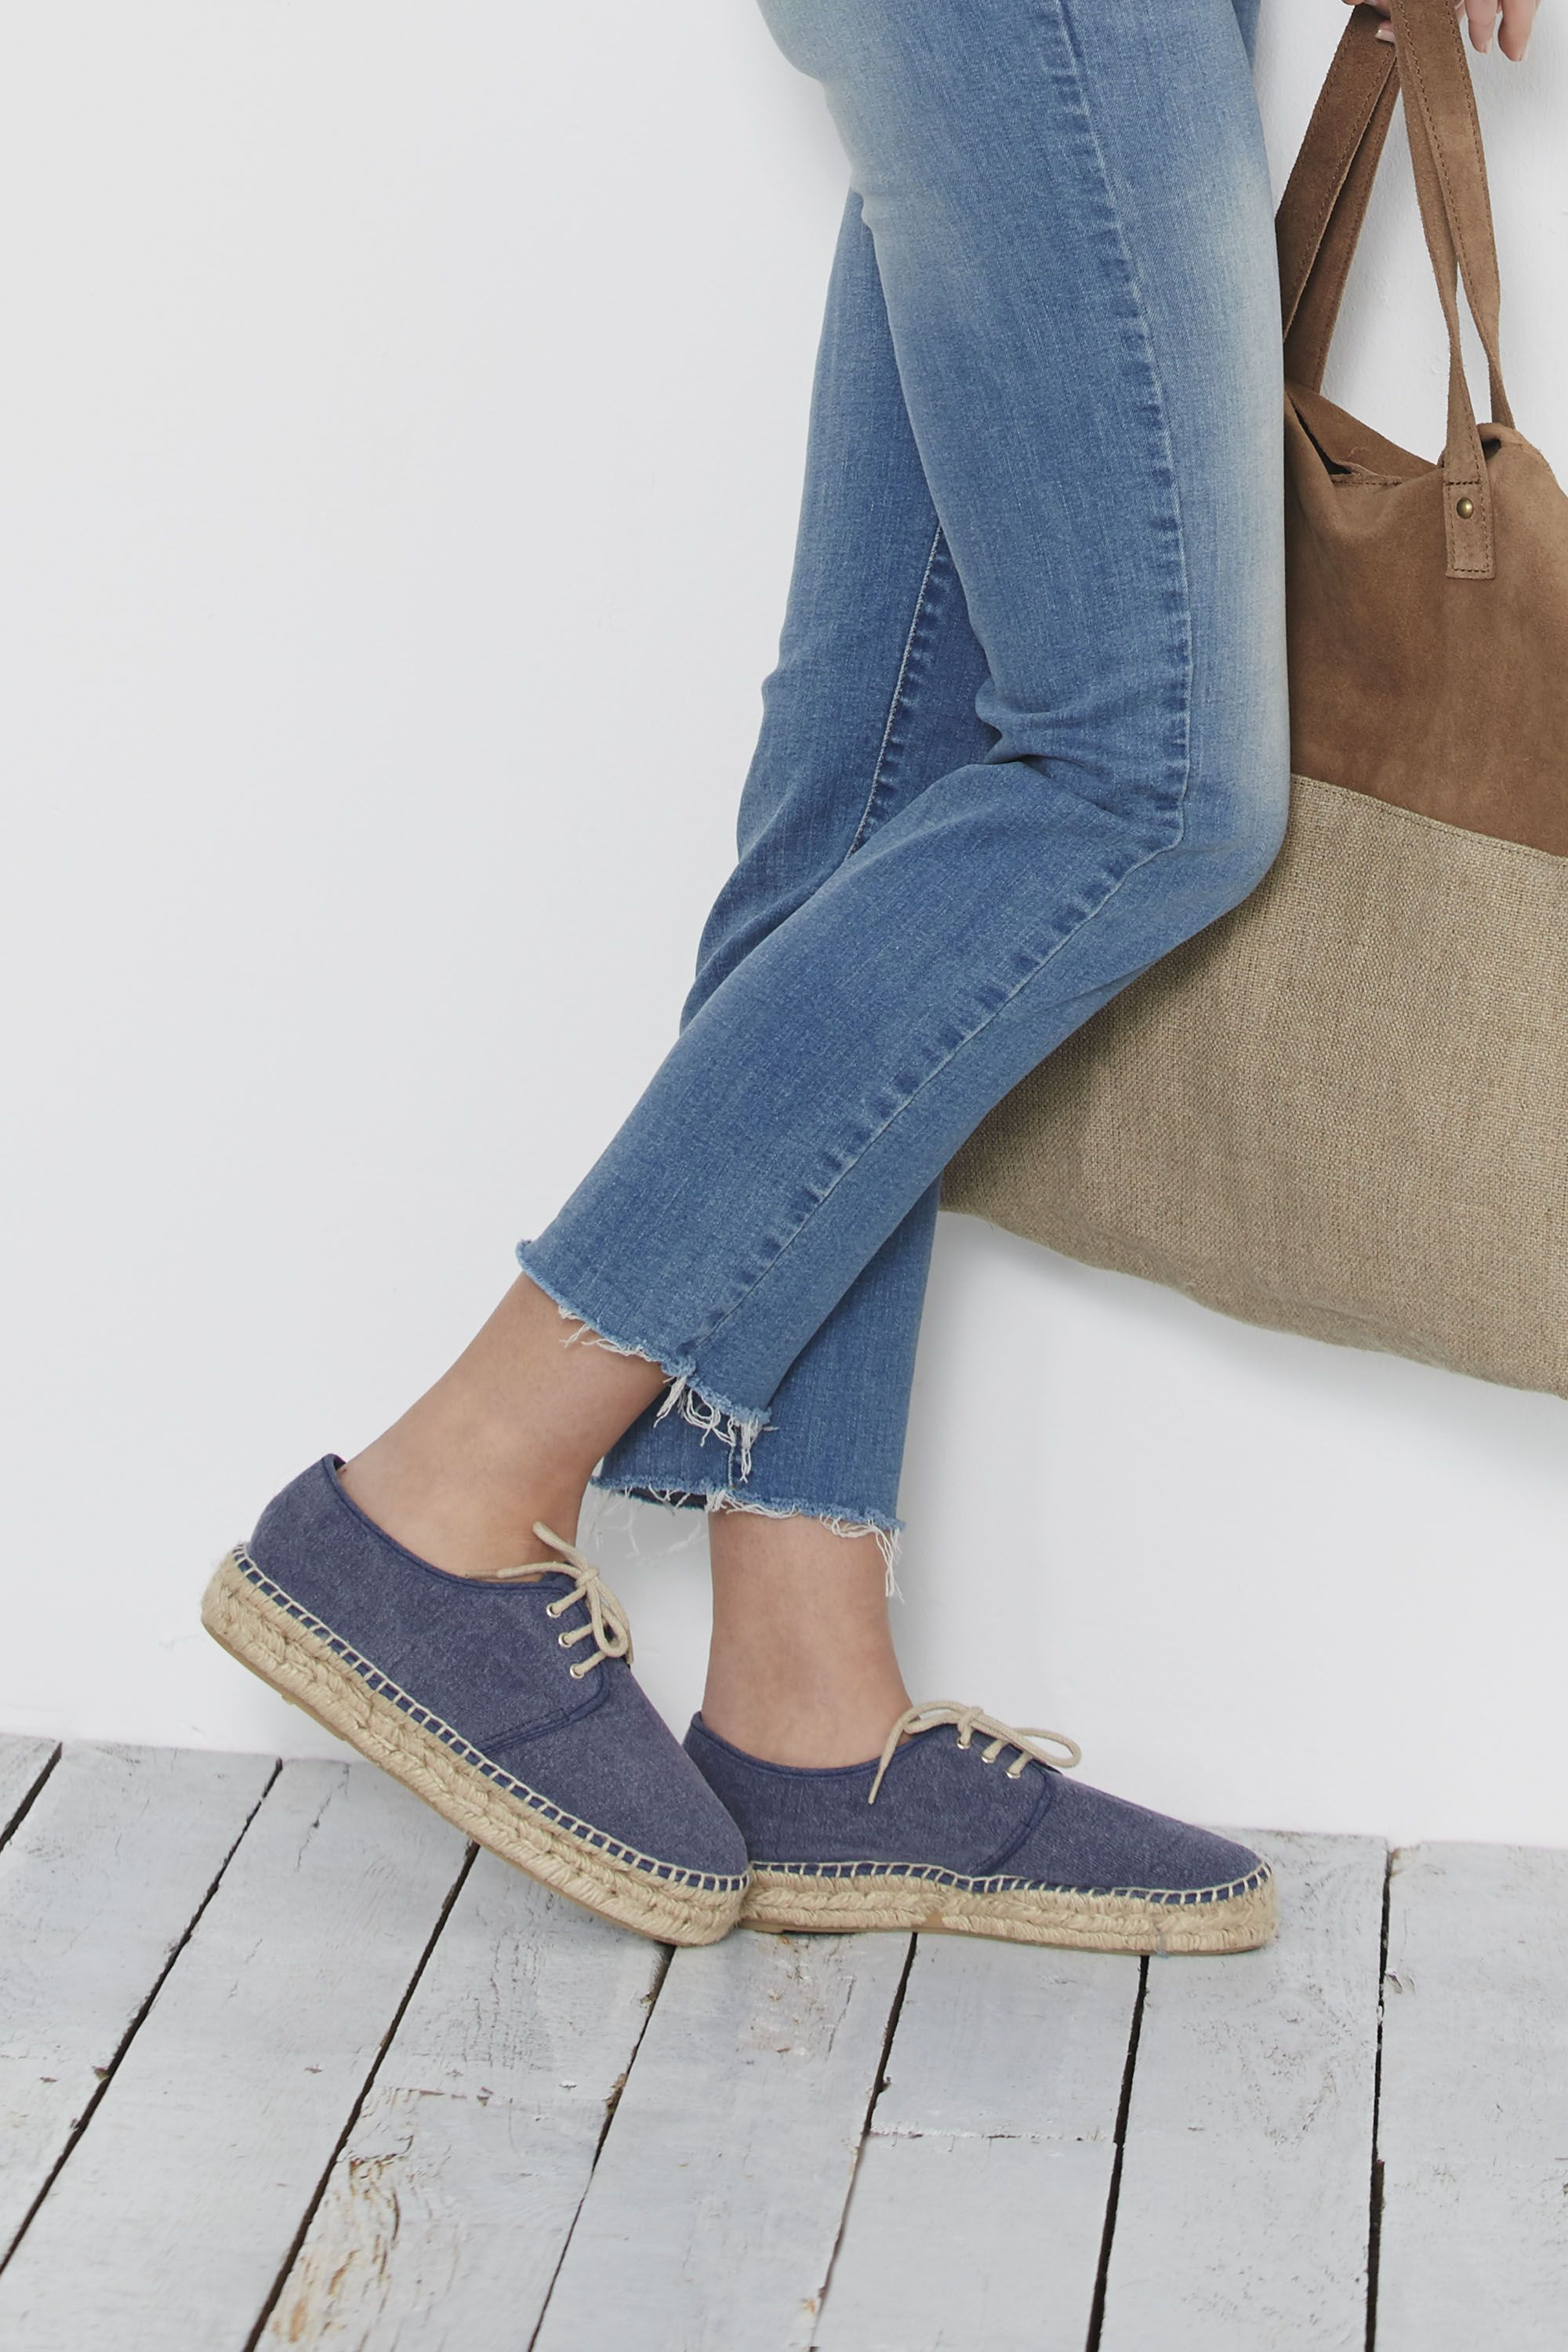 194a4899 alpargata plataforma yute denim | · Clothes/Accessories/Shoes ...